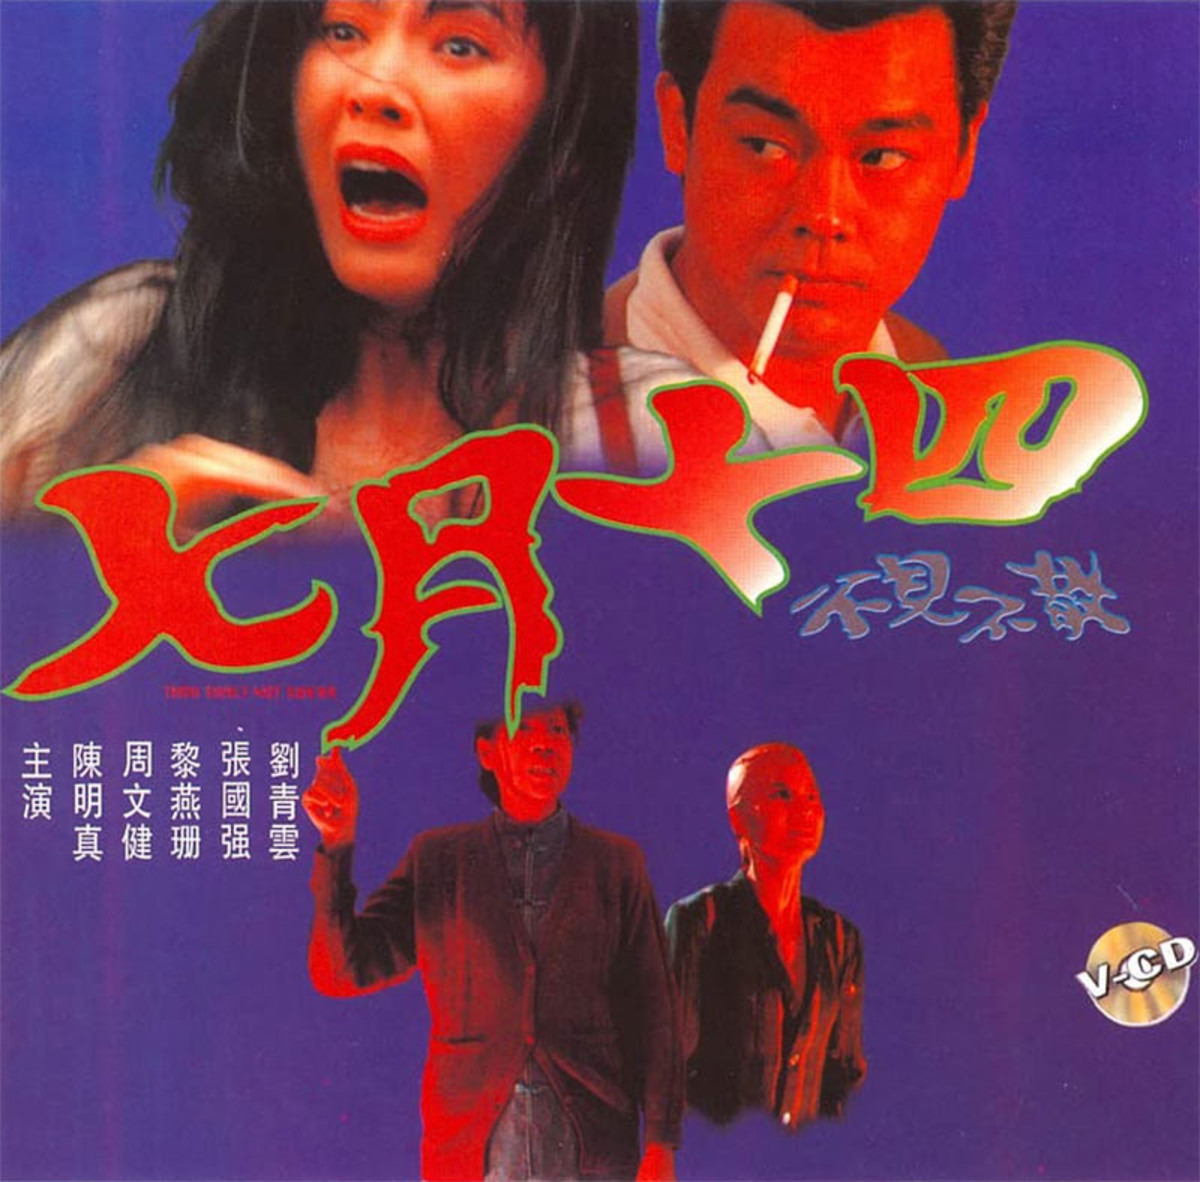 VCD cover for Thou Sall Not Swear. Of note, as this is a Hong Kong production, the date indicated is the fourteenth. (See Point 1)